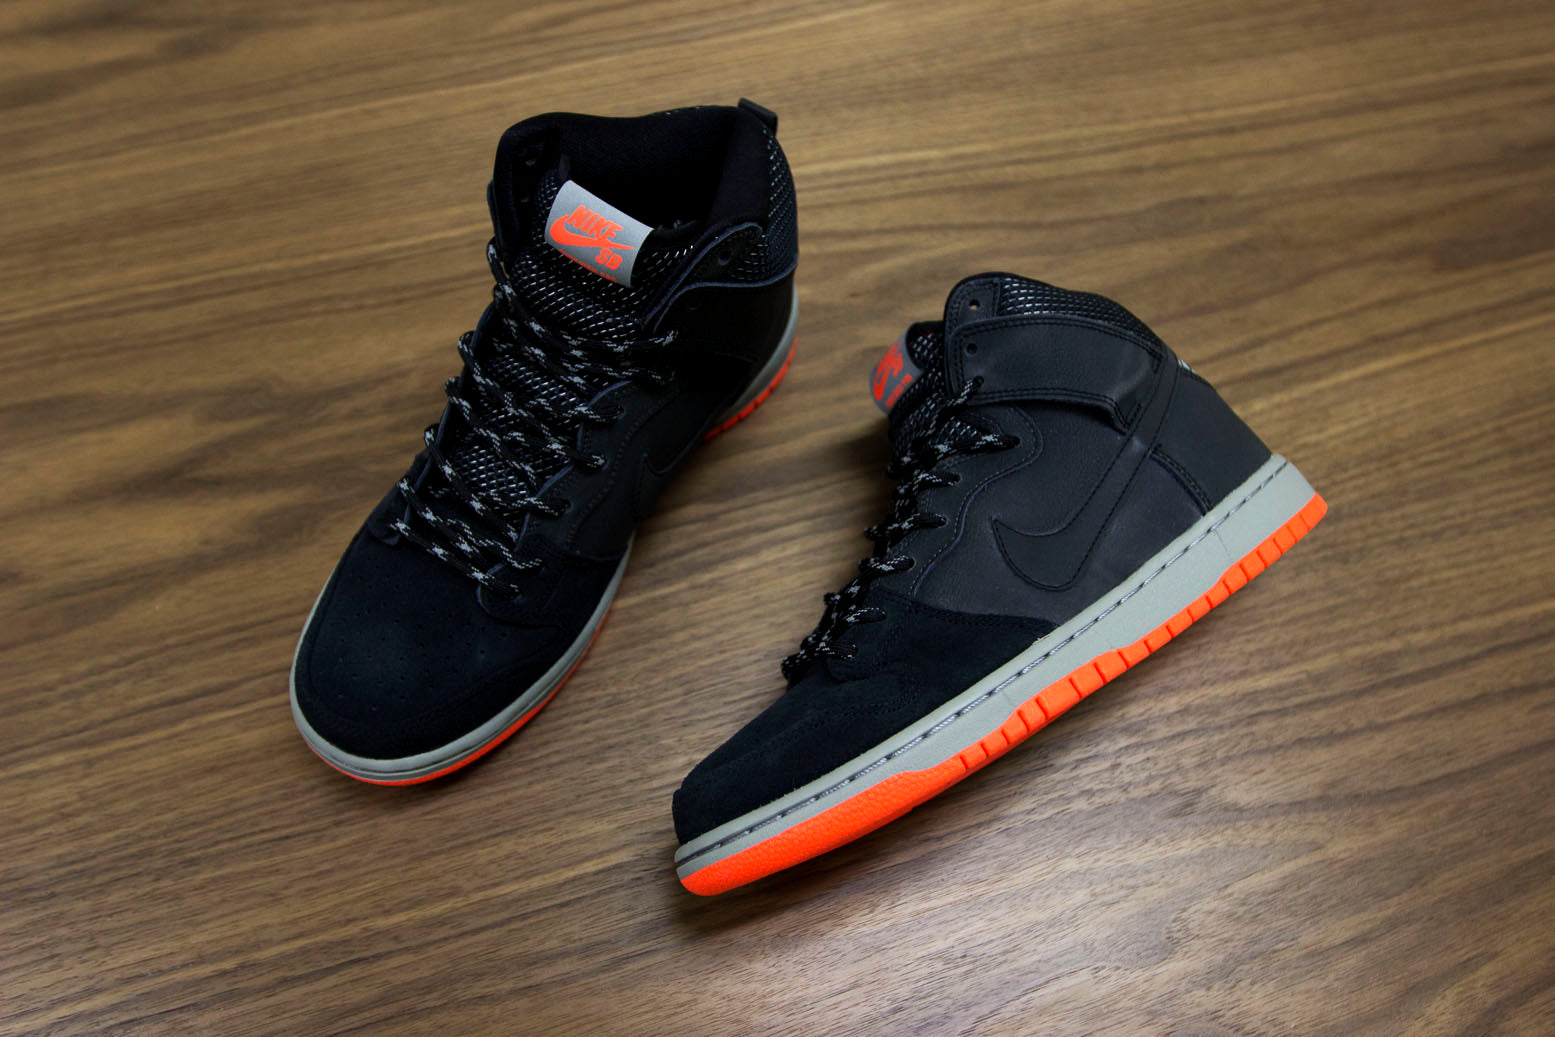 50afc30dbc5efc reduced nike sb dunk high premium 3m new images 55d41 47b98  good features  to its beloved sb dunk high premiums. the new waterproofing technology  gives you